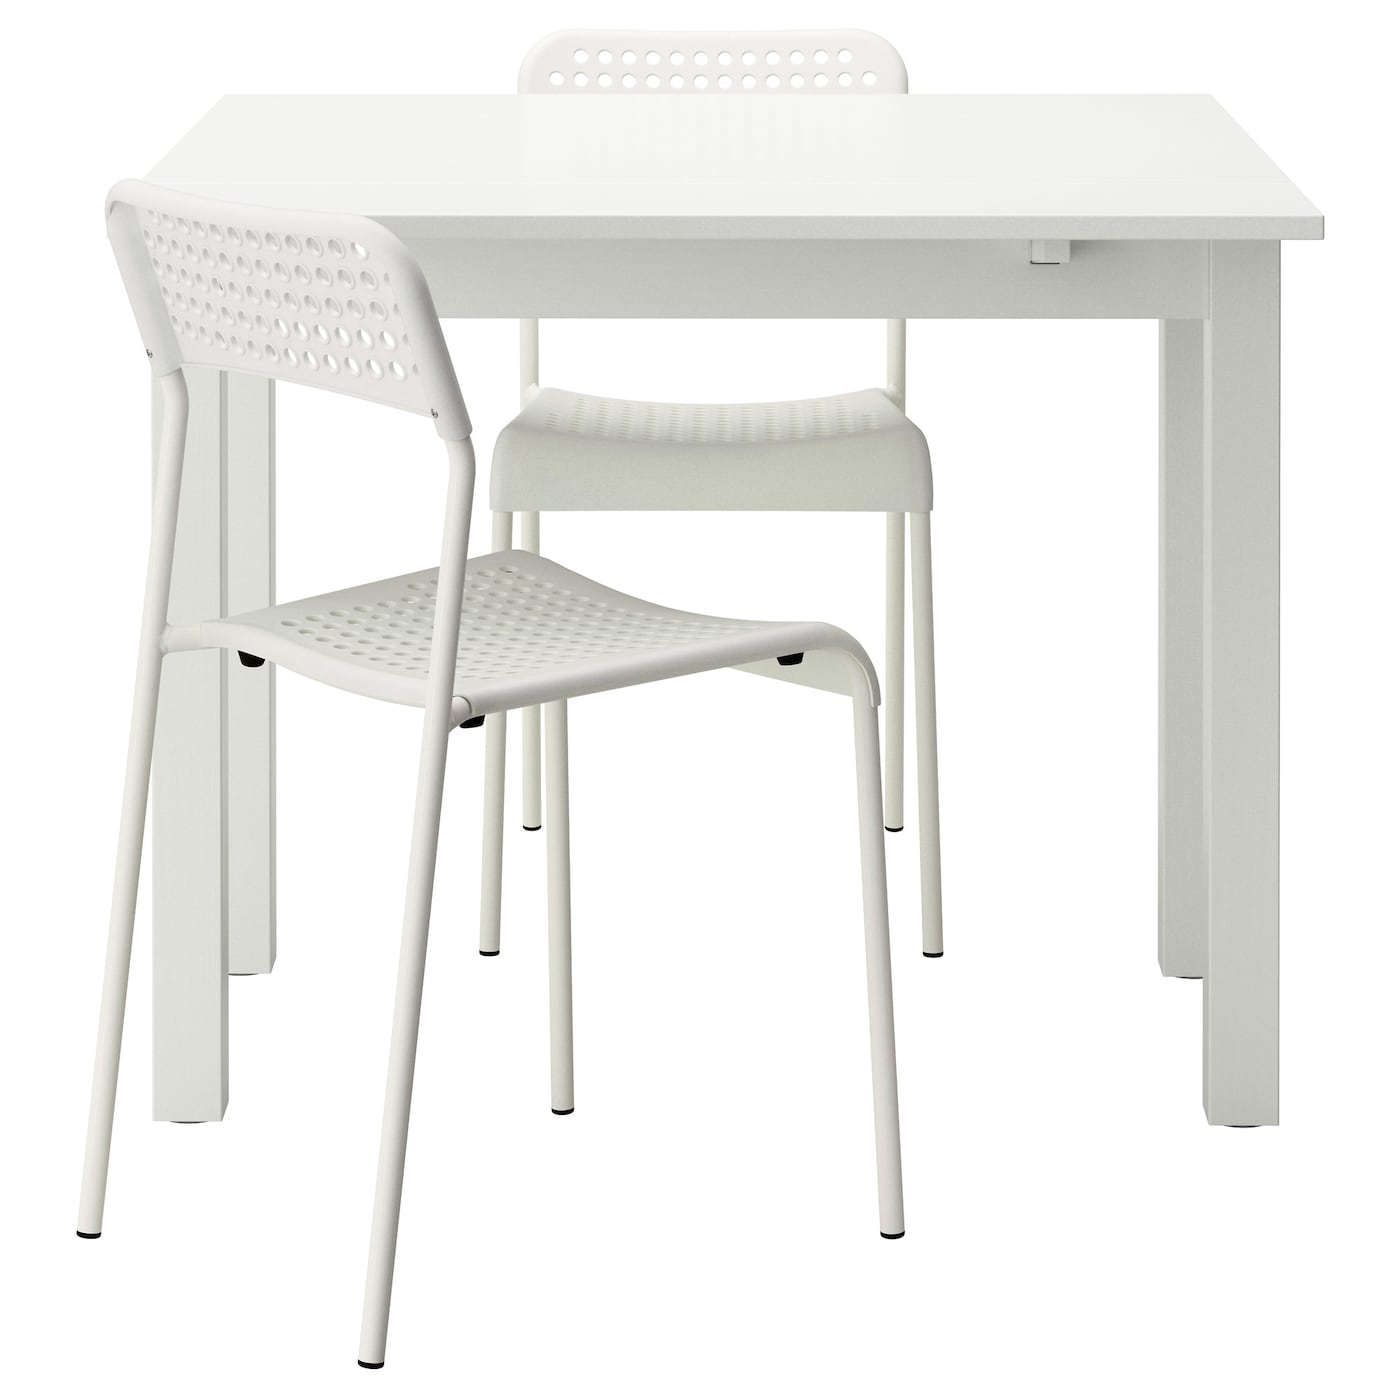 Bjursta adde table and 2 chairs white 50 cm ikea for Tables de nuit ikea